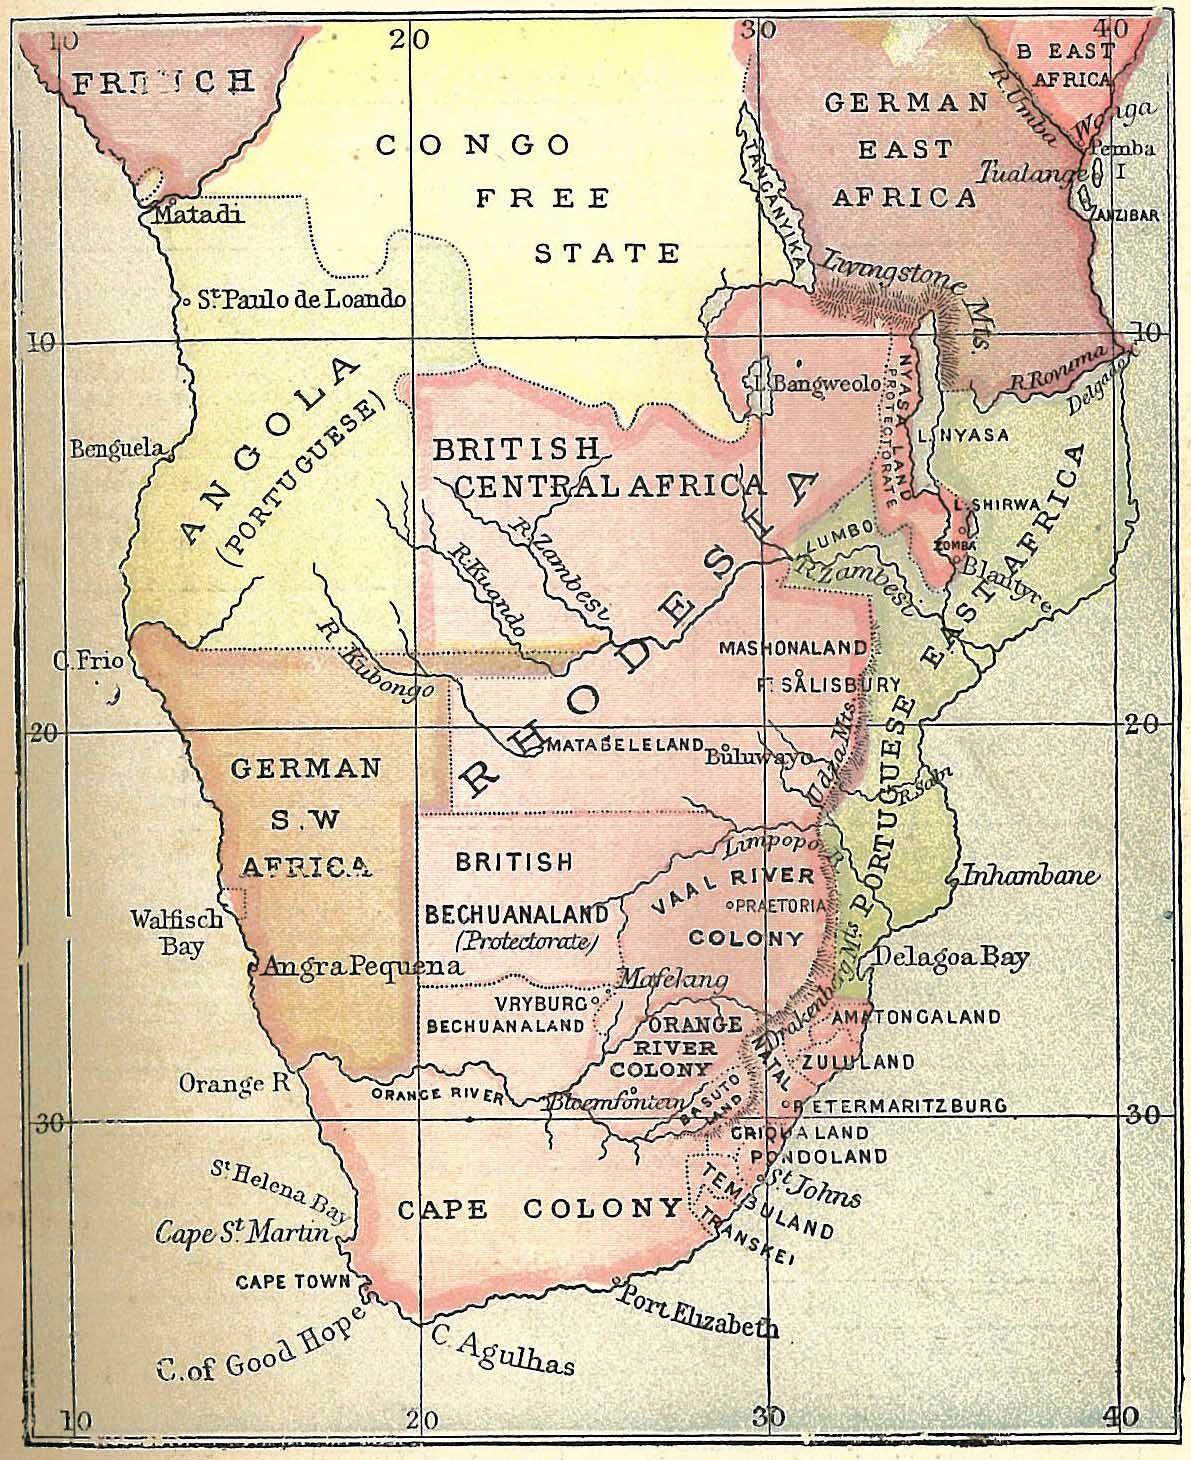 map of Rhodesia | Rhodesia, Northern Rhodesia & Southern Rhodesia